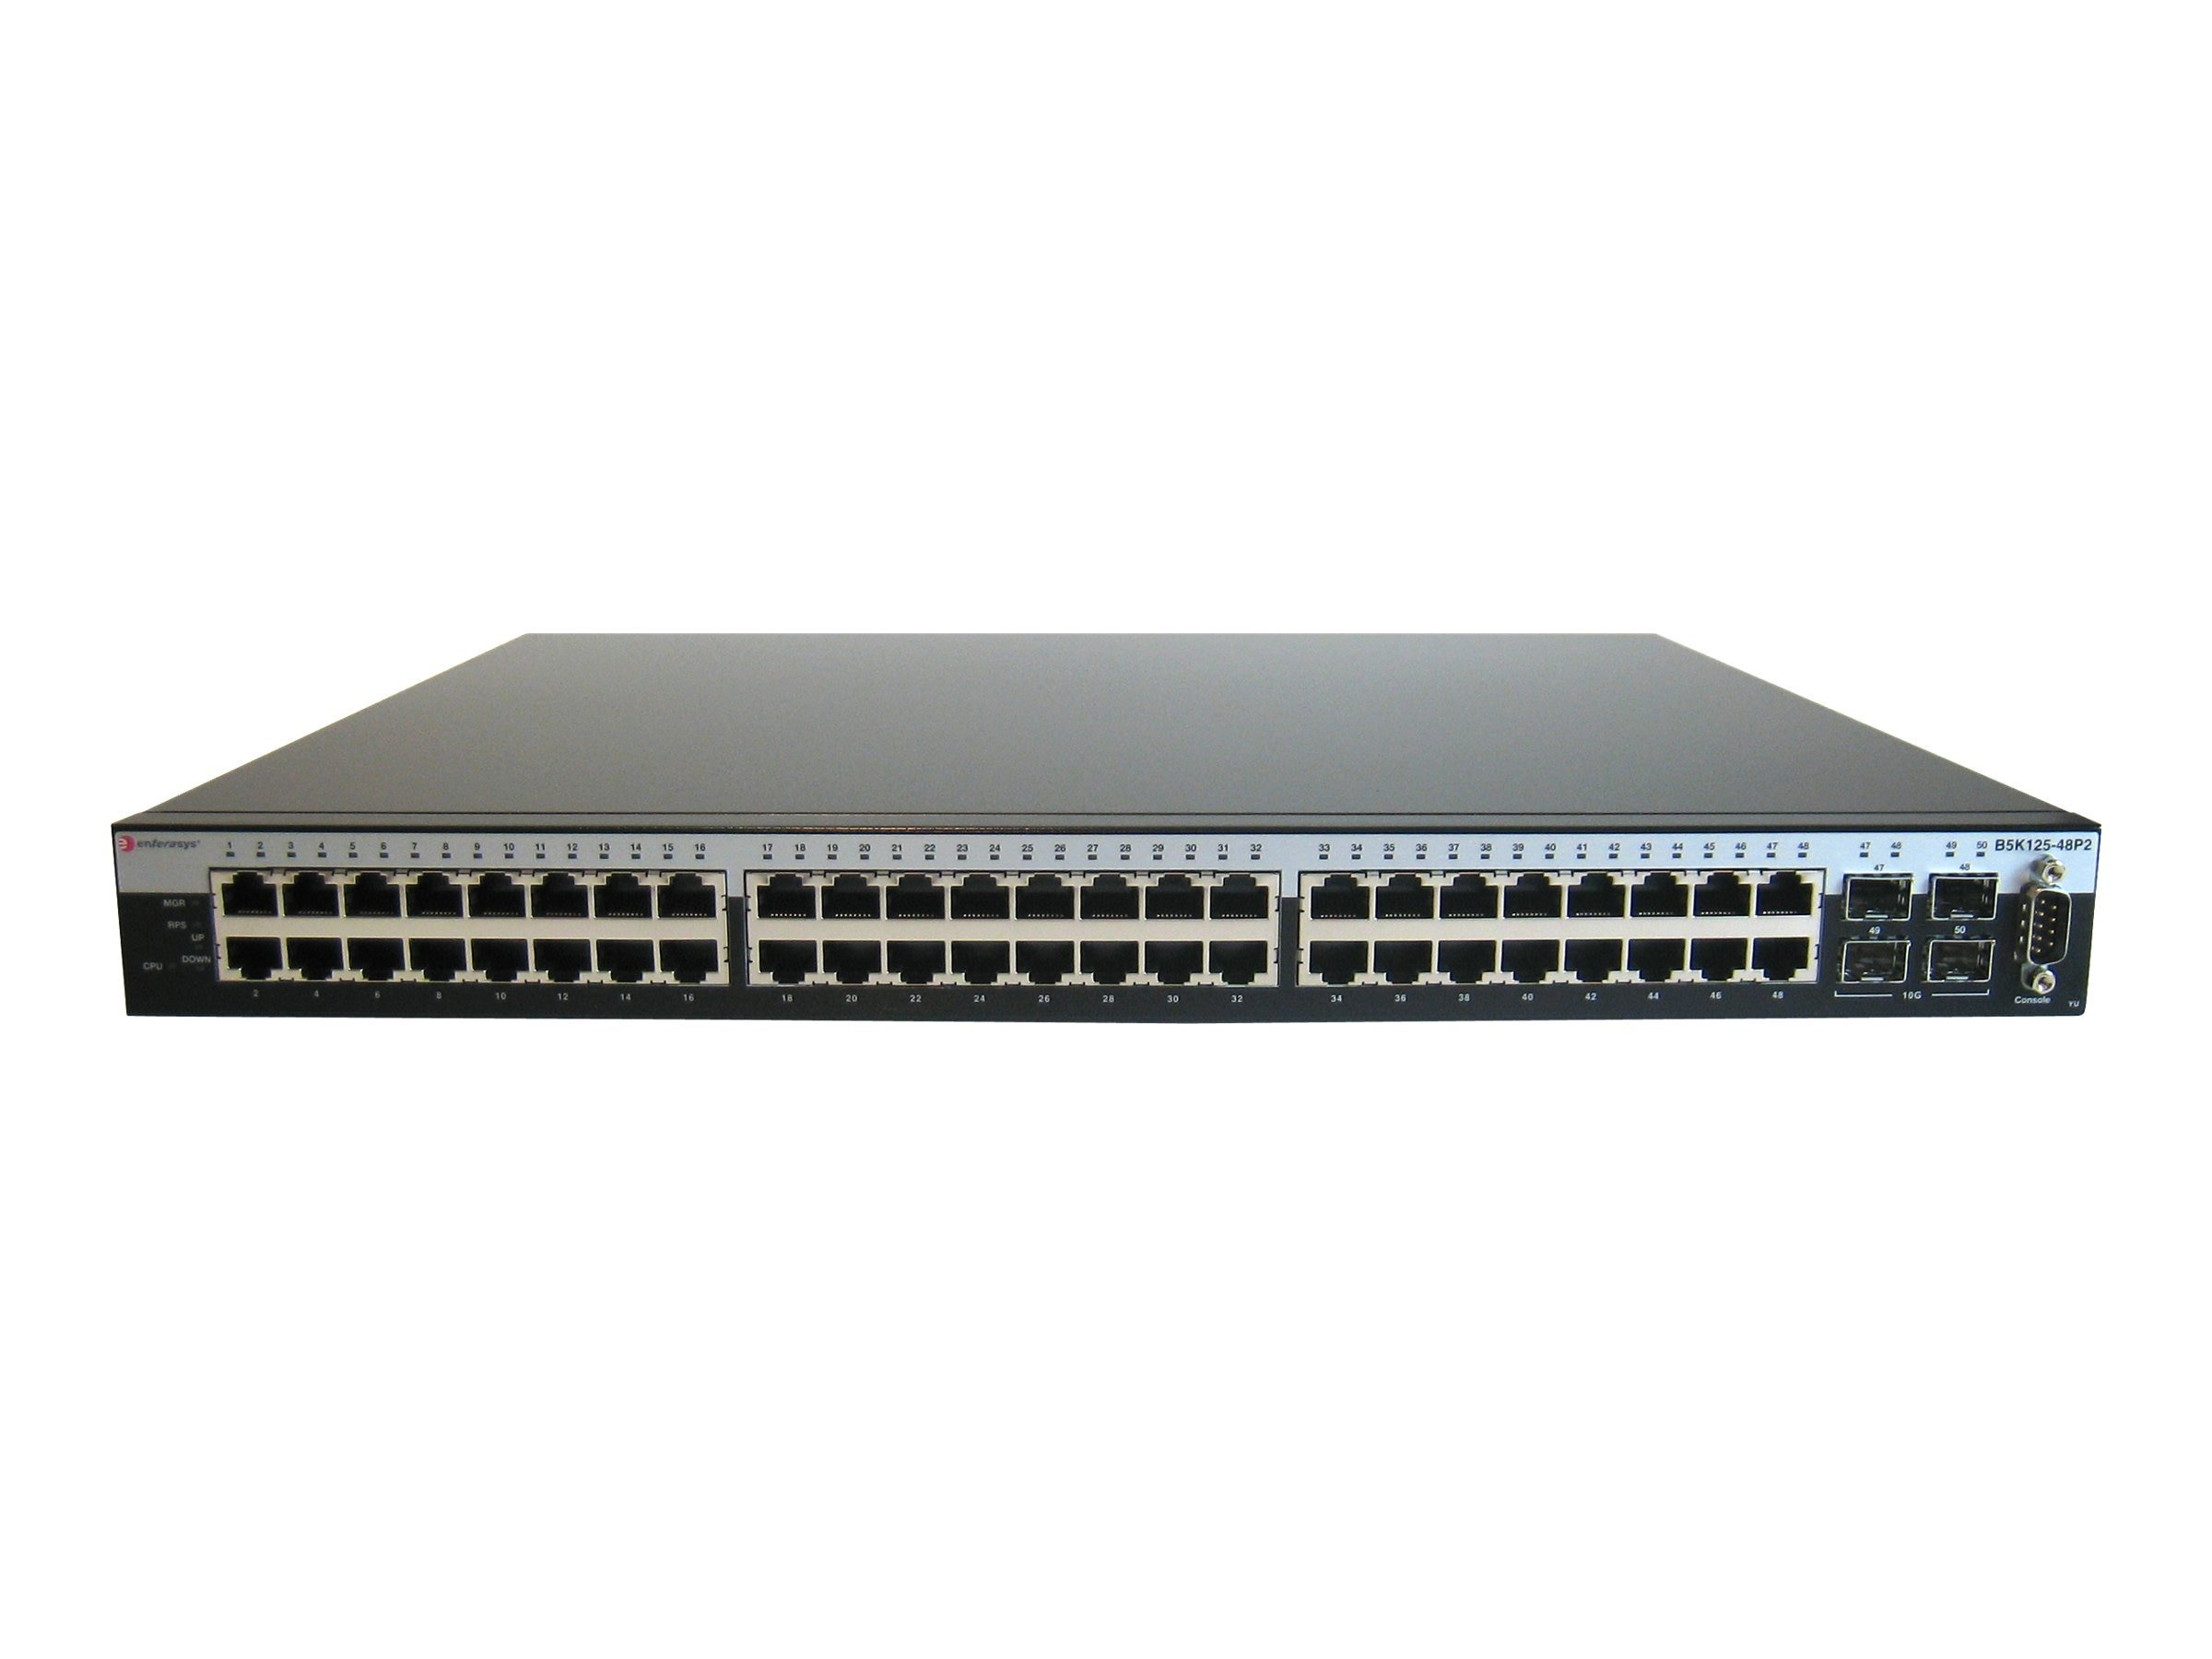 Enterasys B5 Stackable Switch 48-port 2 SFP Plus, B5K125-48P2, 11142004, Network Switches